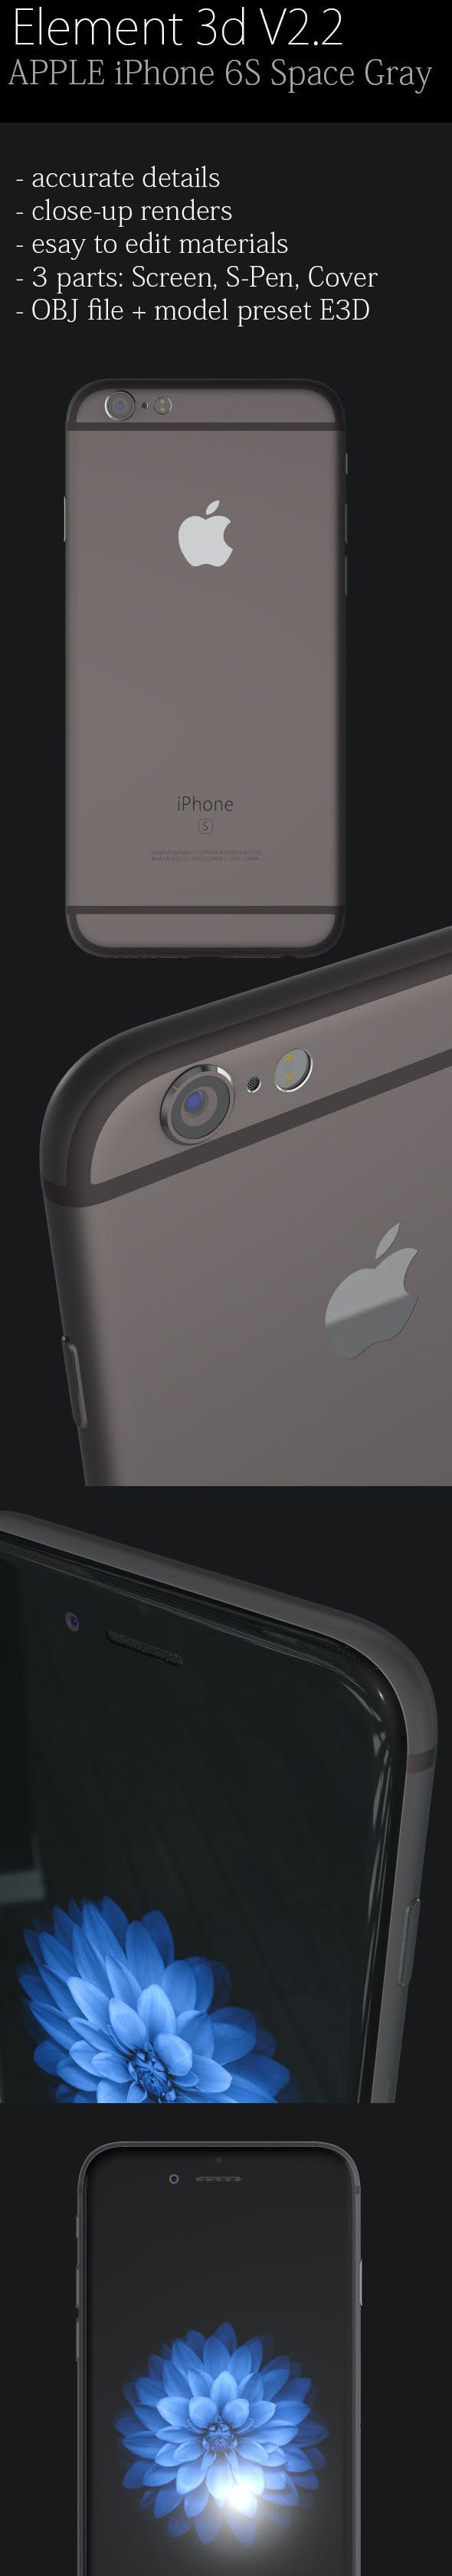 Element3D - Apple iPhone 6S Space Gray - 3DOcean Item for Sale